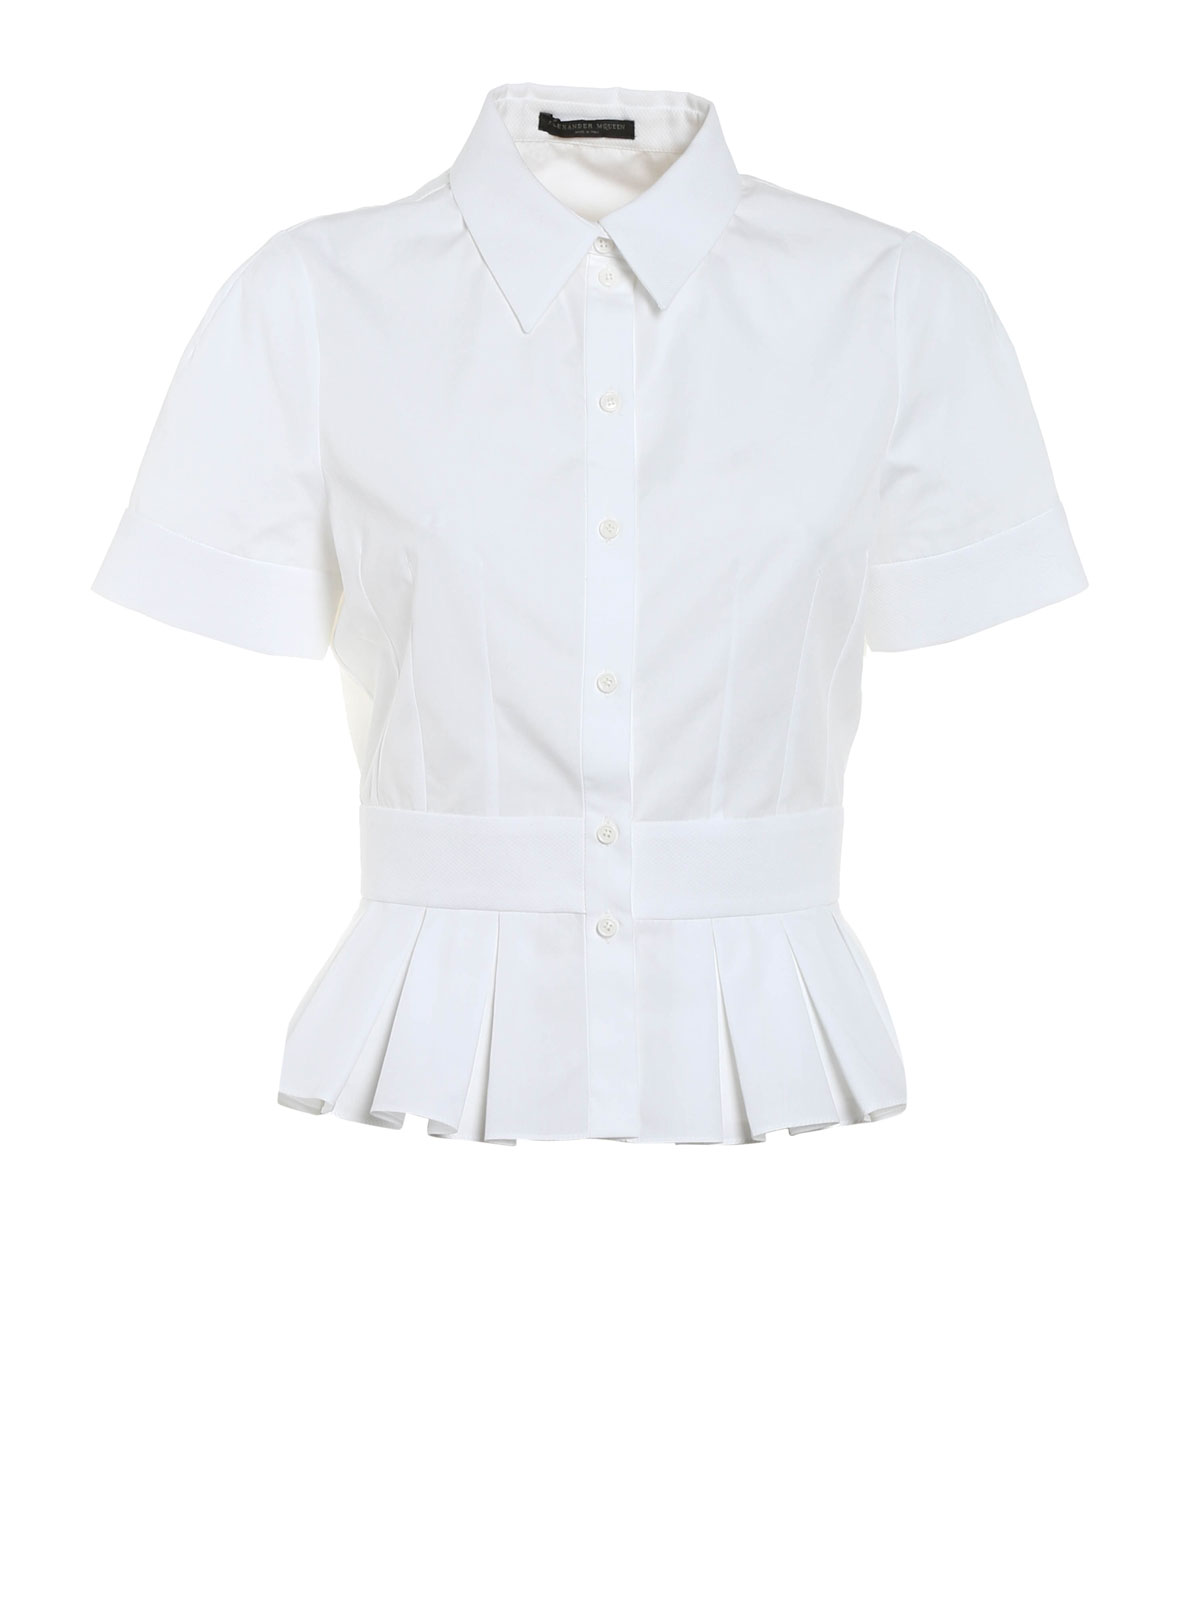 Extremely For Sale peplum blouse - White Alexander McQueen Buy Online Authentic Buy Cheap Footlocker Finishline xCPWbugvg